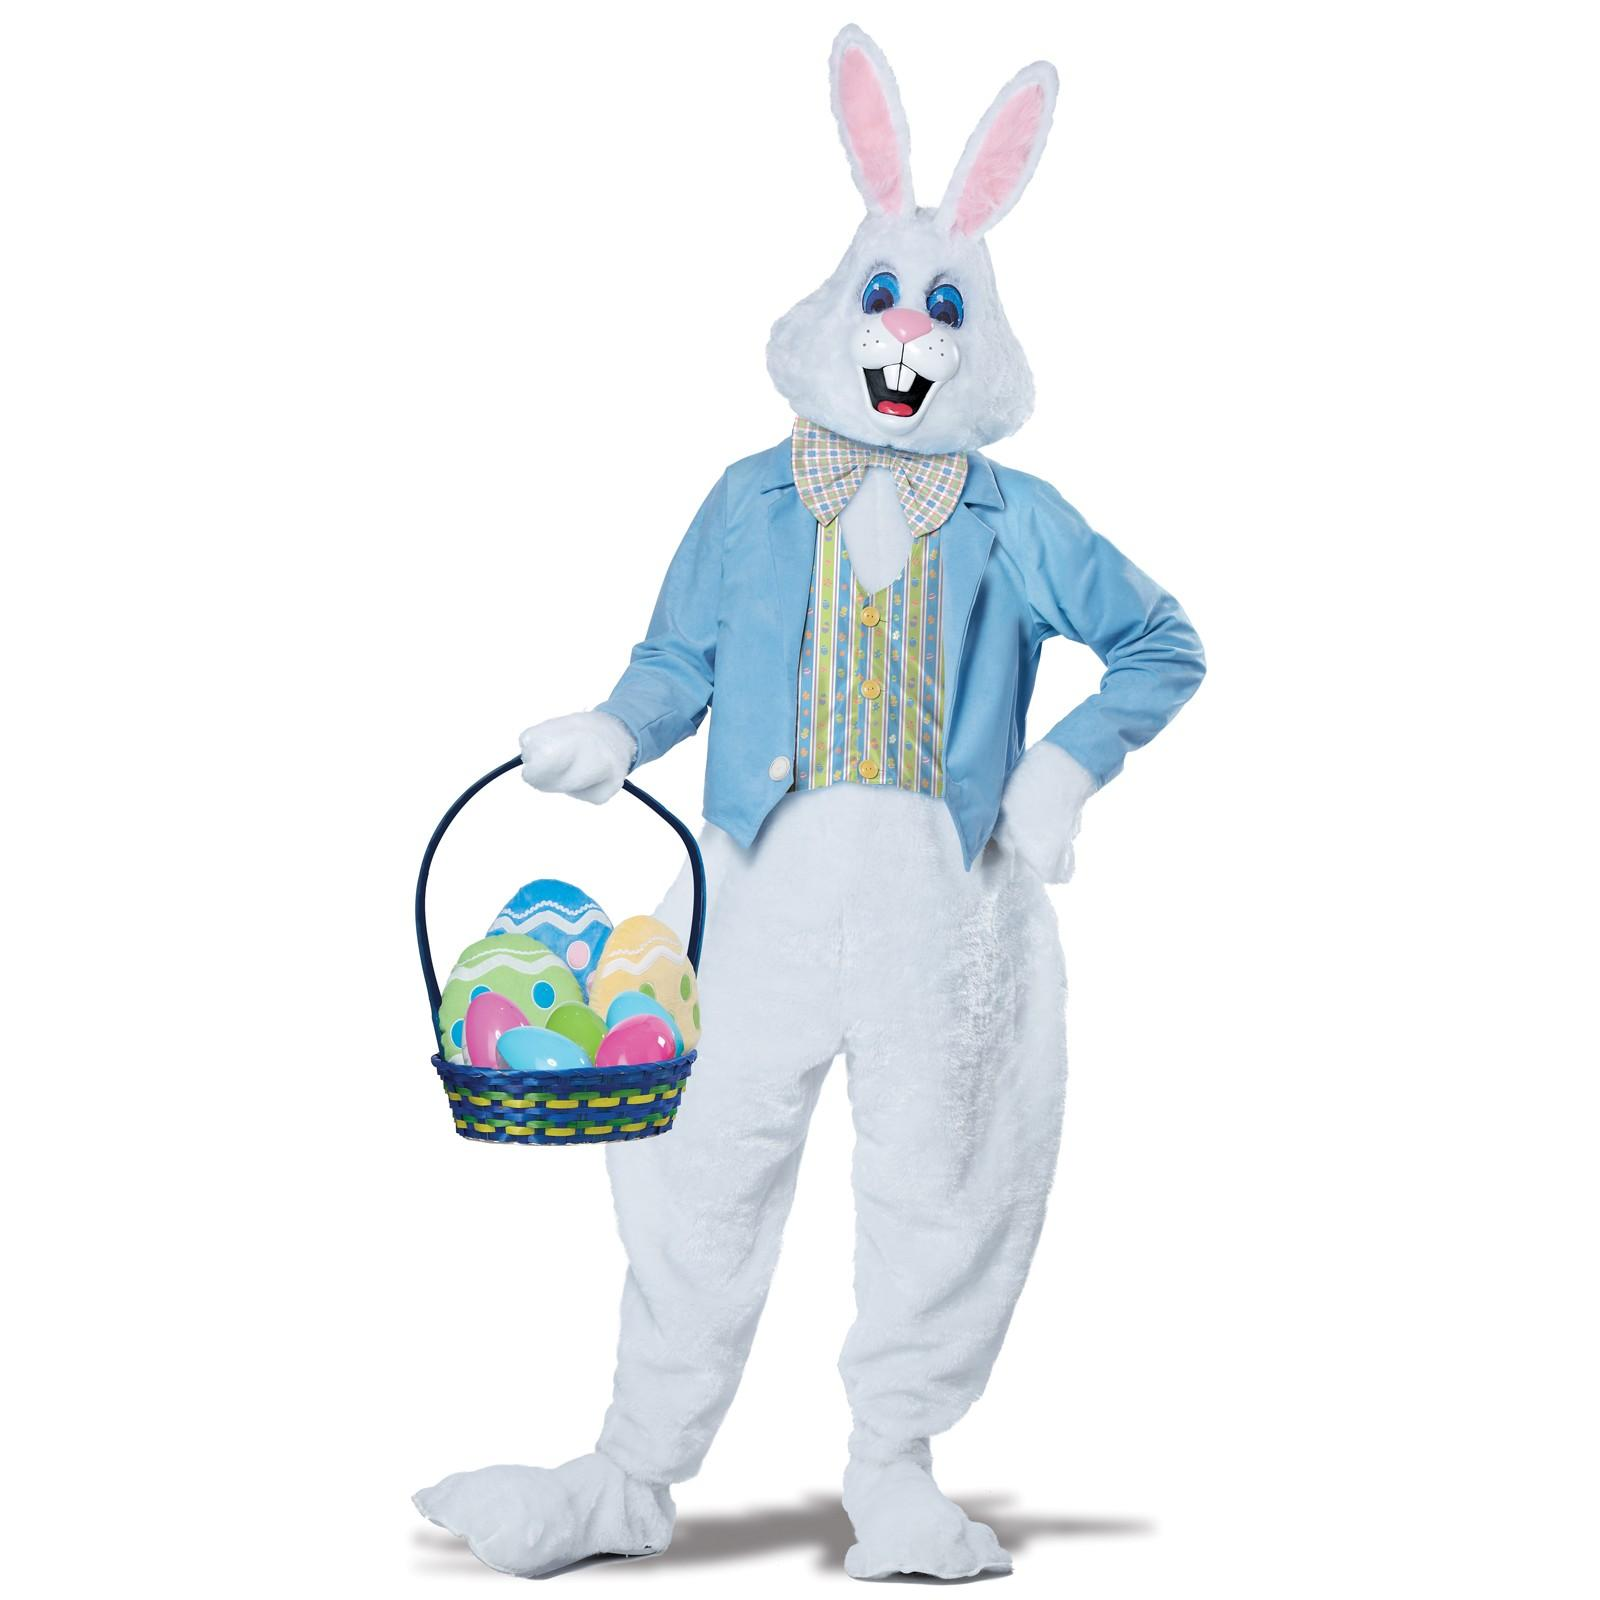 Deluxe Adult Easter Bunny Costume - S/M (38-42)